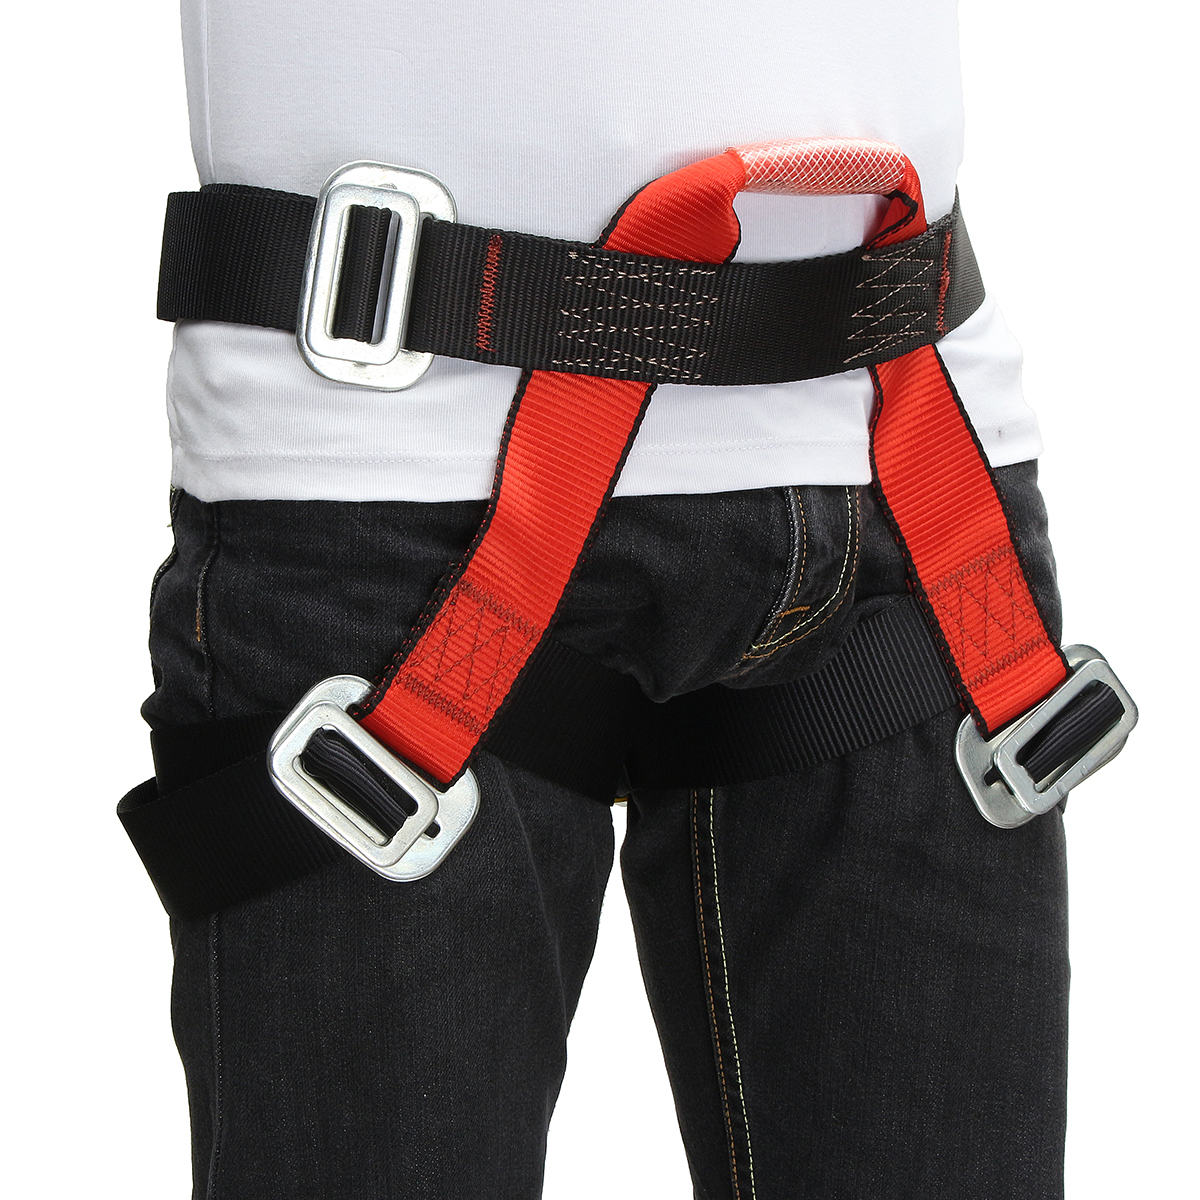 Outdoor Mountain Rock Climbing Rappelling Harness Bust Belt Rescue Safety Seat Sitting Strap